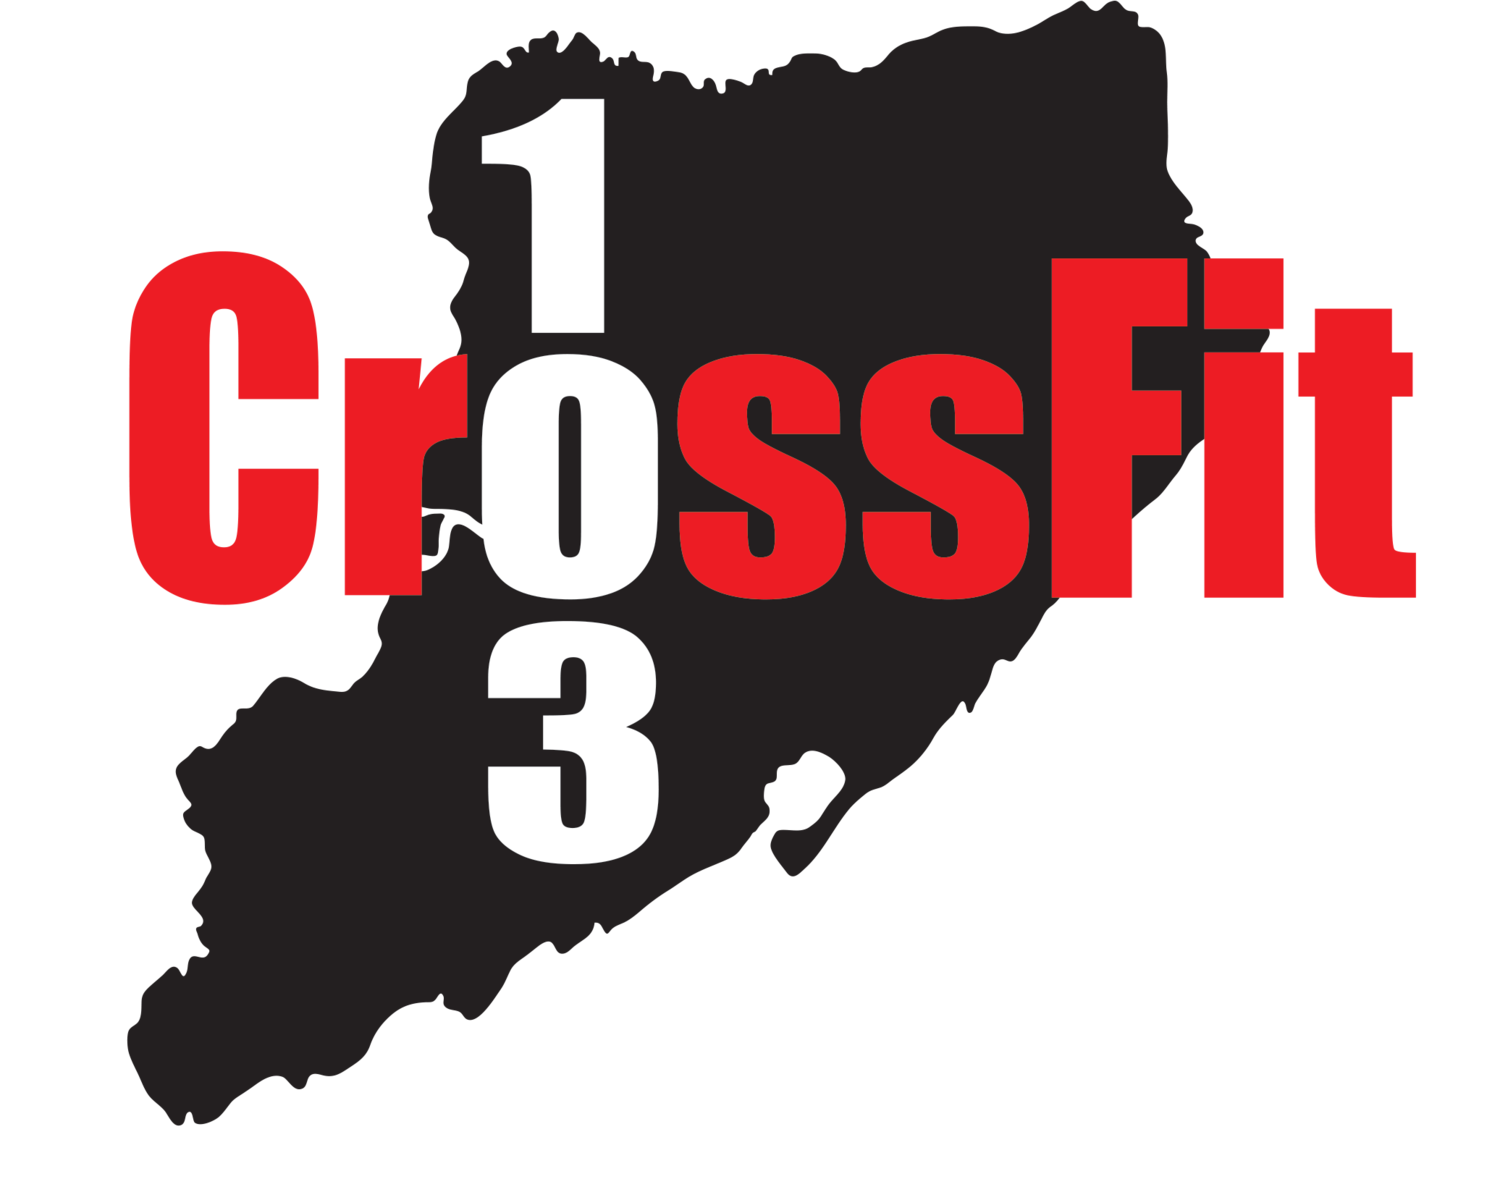 CROSSFIT | CROSSFIT GYM | PERSONAL TRAINING | STATEN ISLAND, NY | CROSSFIT 103